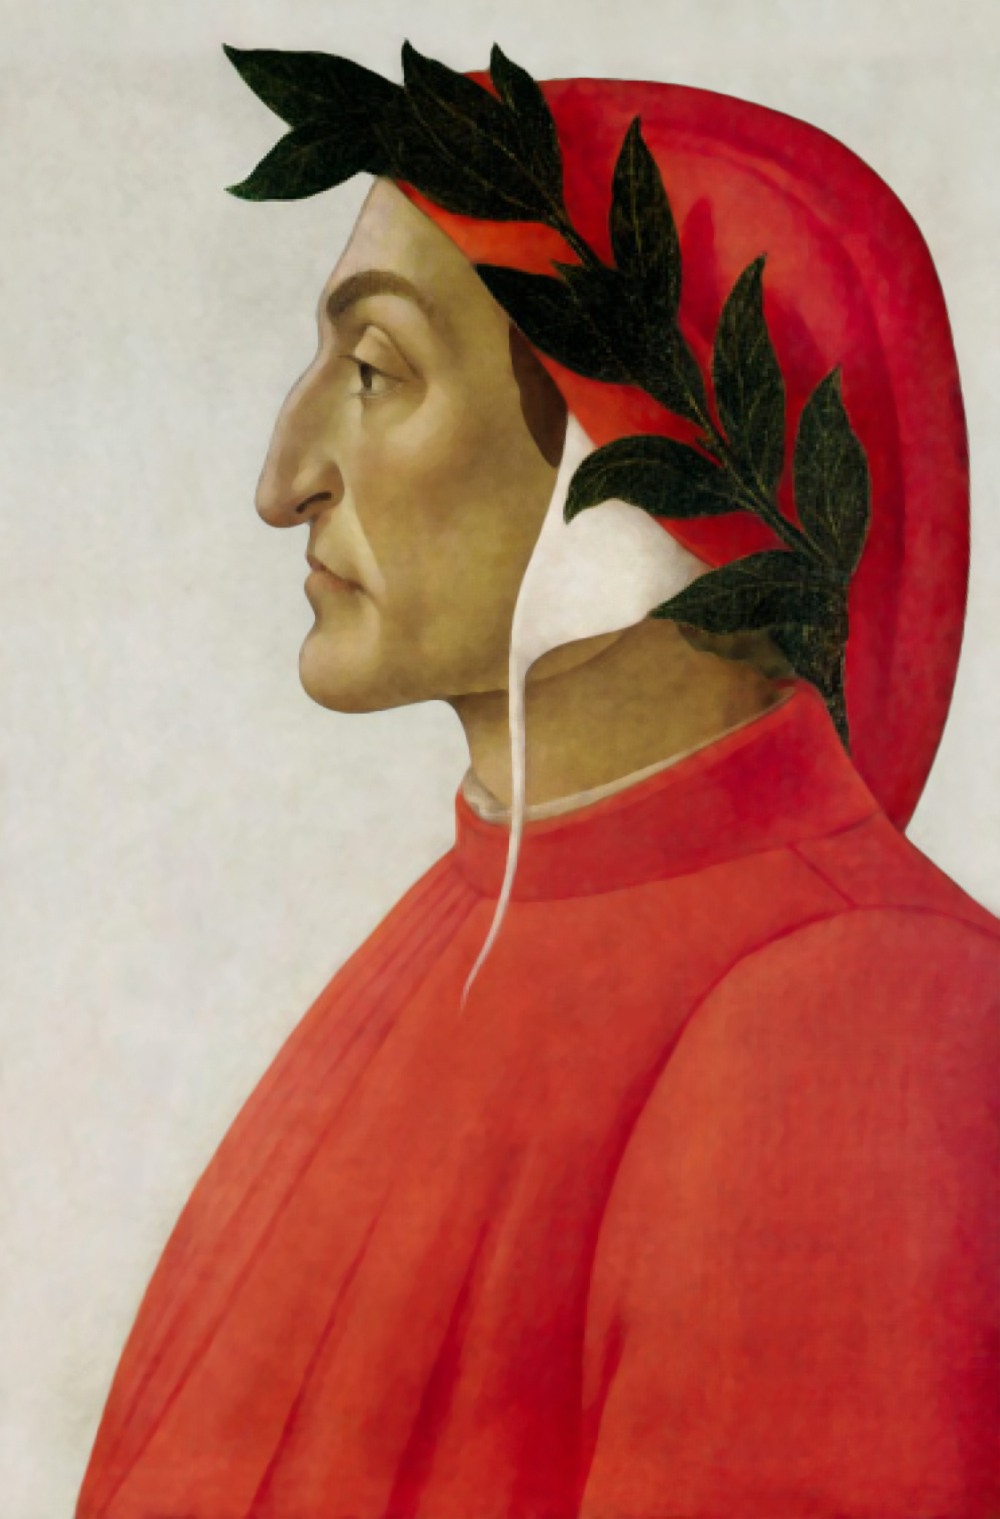 [[wikt:posthumous|Posthumous]] portrait in [[tempera]]<br>by [[Sandro Botticelli]], 1495